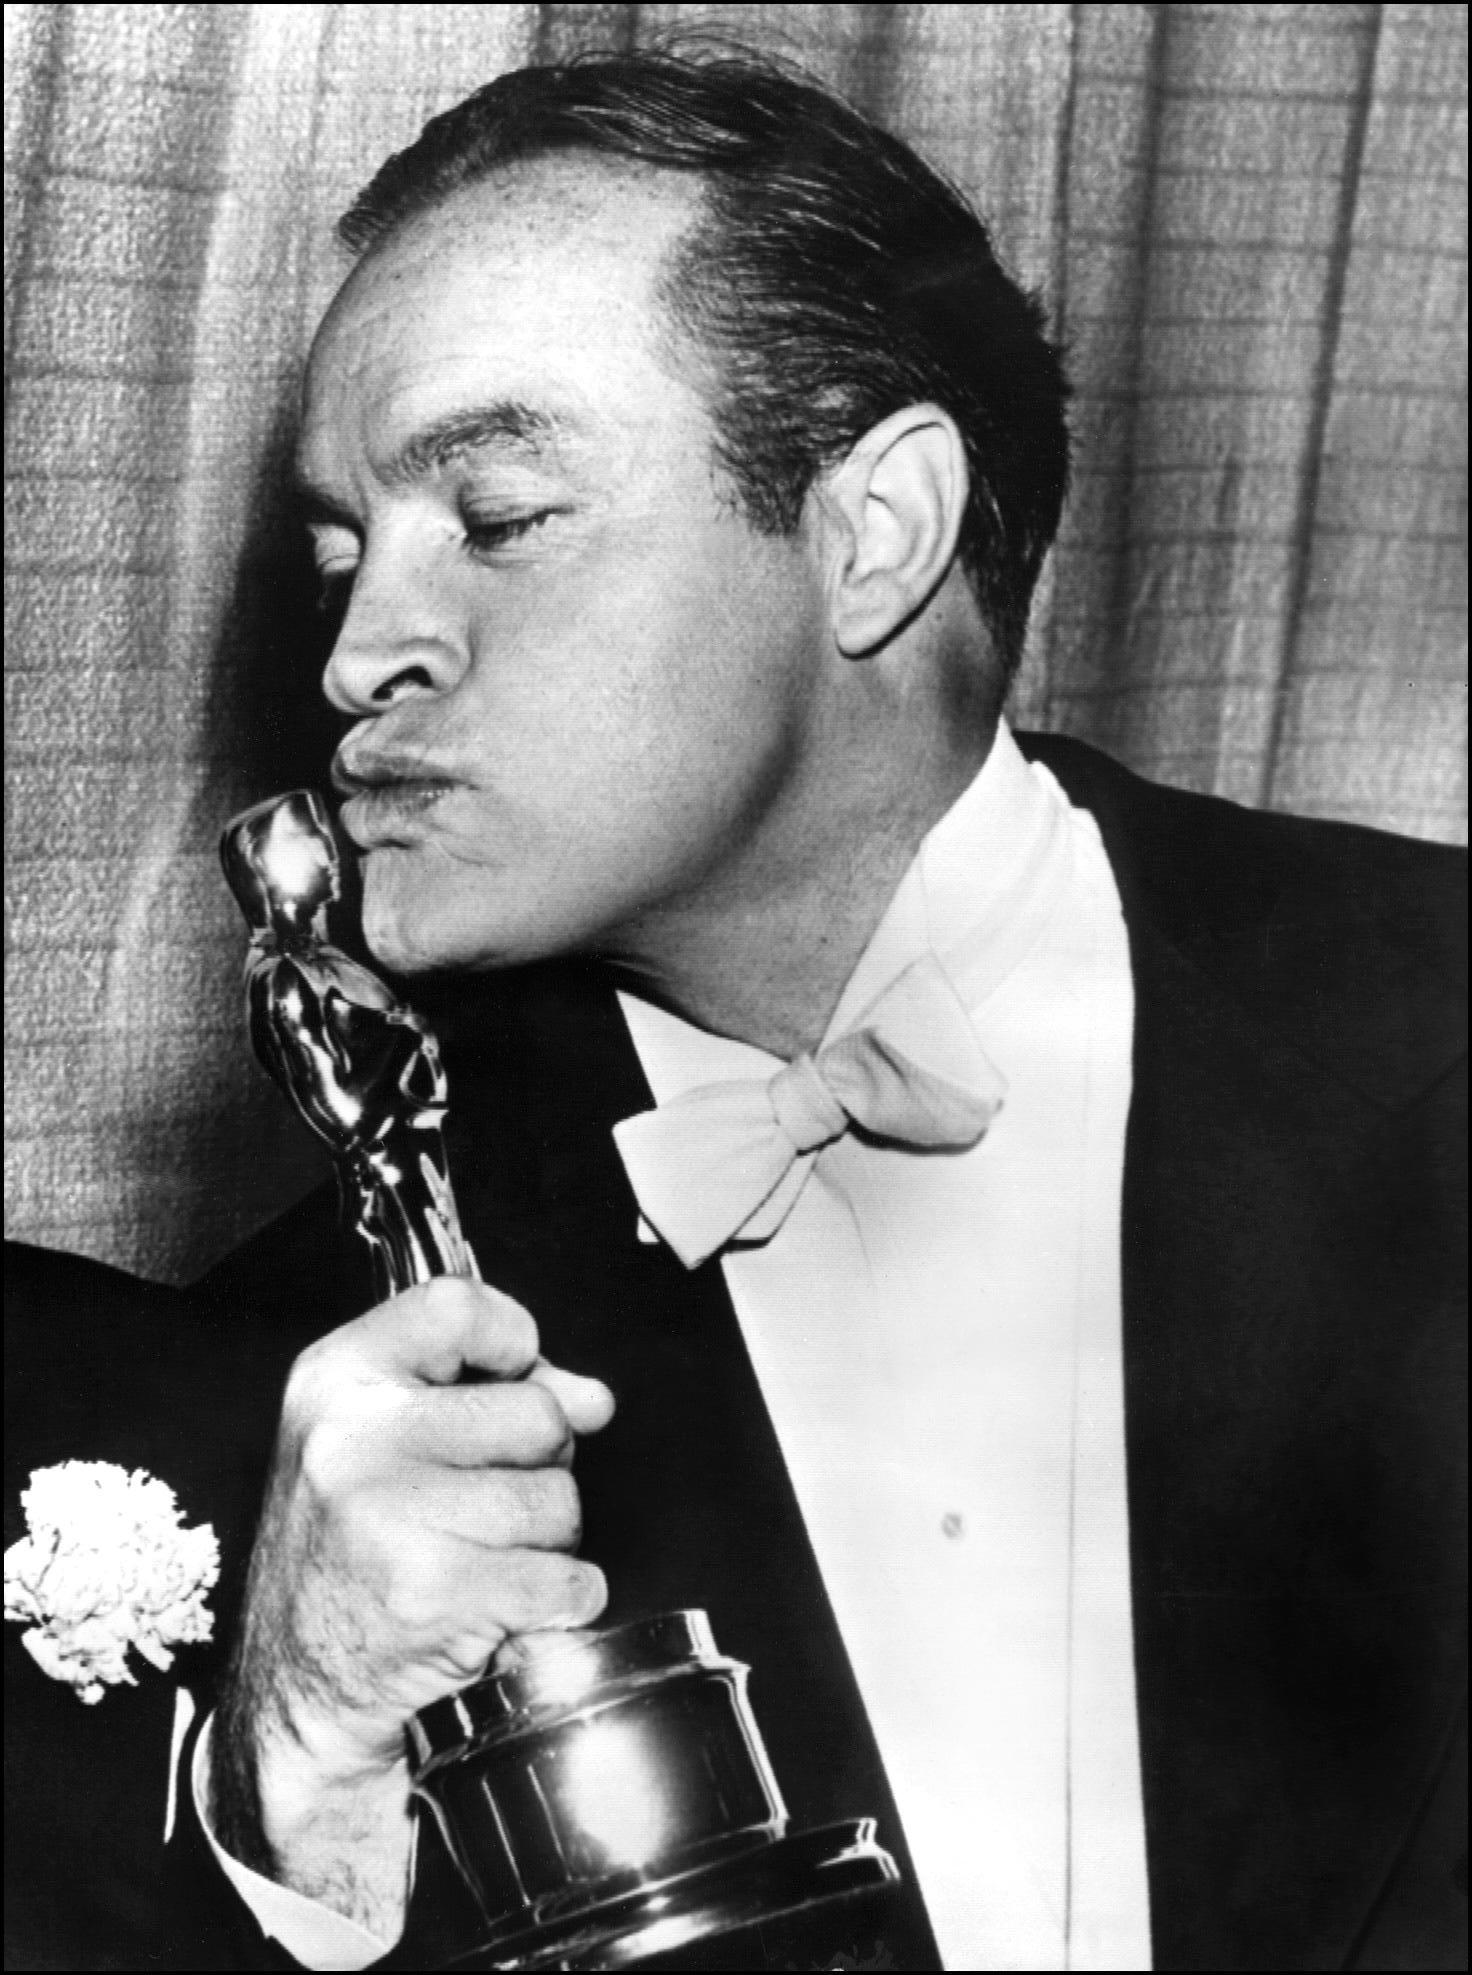 US entertainer Bob Hope shown in photo dated 20 March 1953 kissing the Oscar he received for Special Honors at the Academy Awards show in Hollywood.